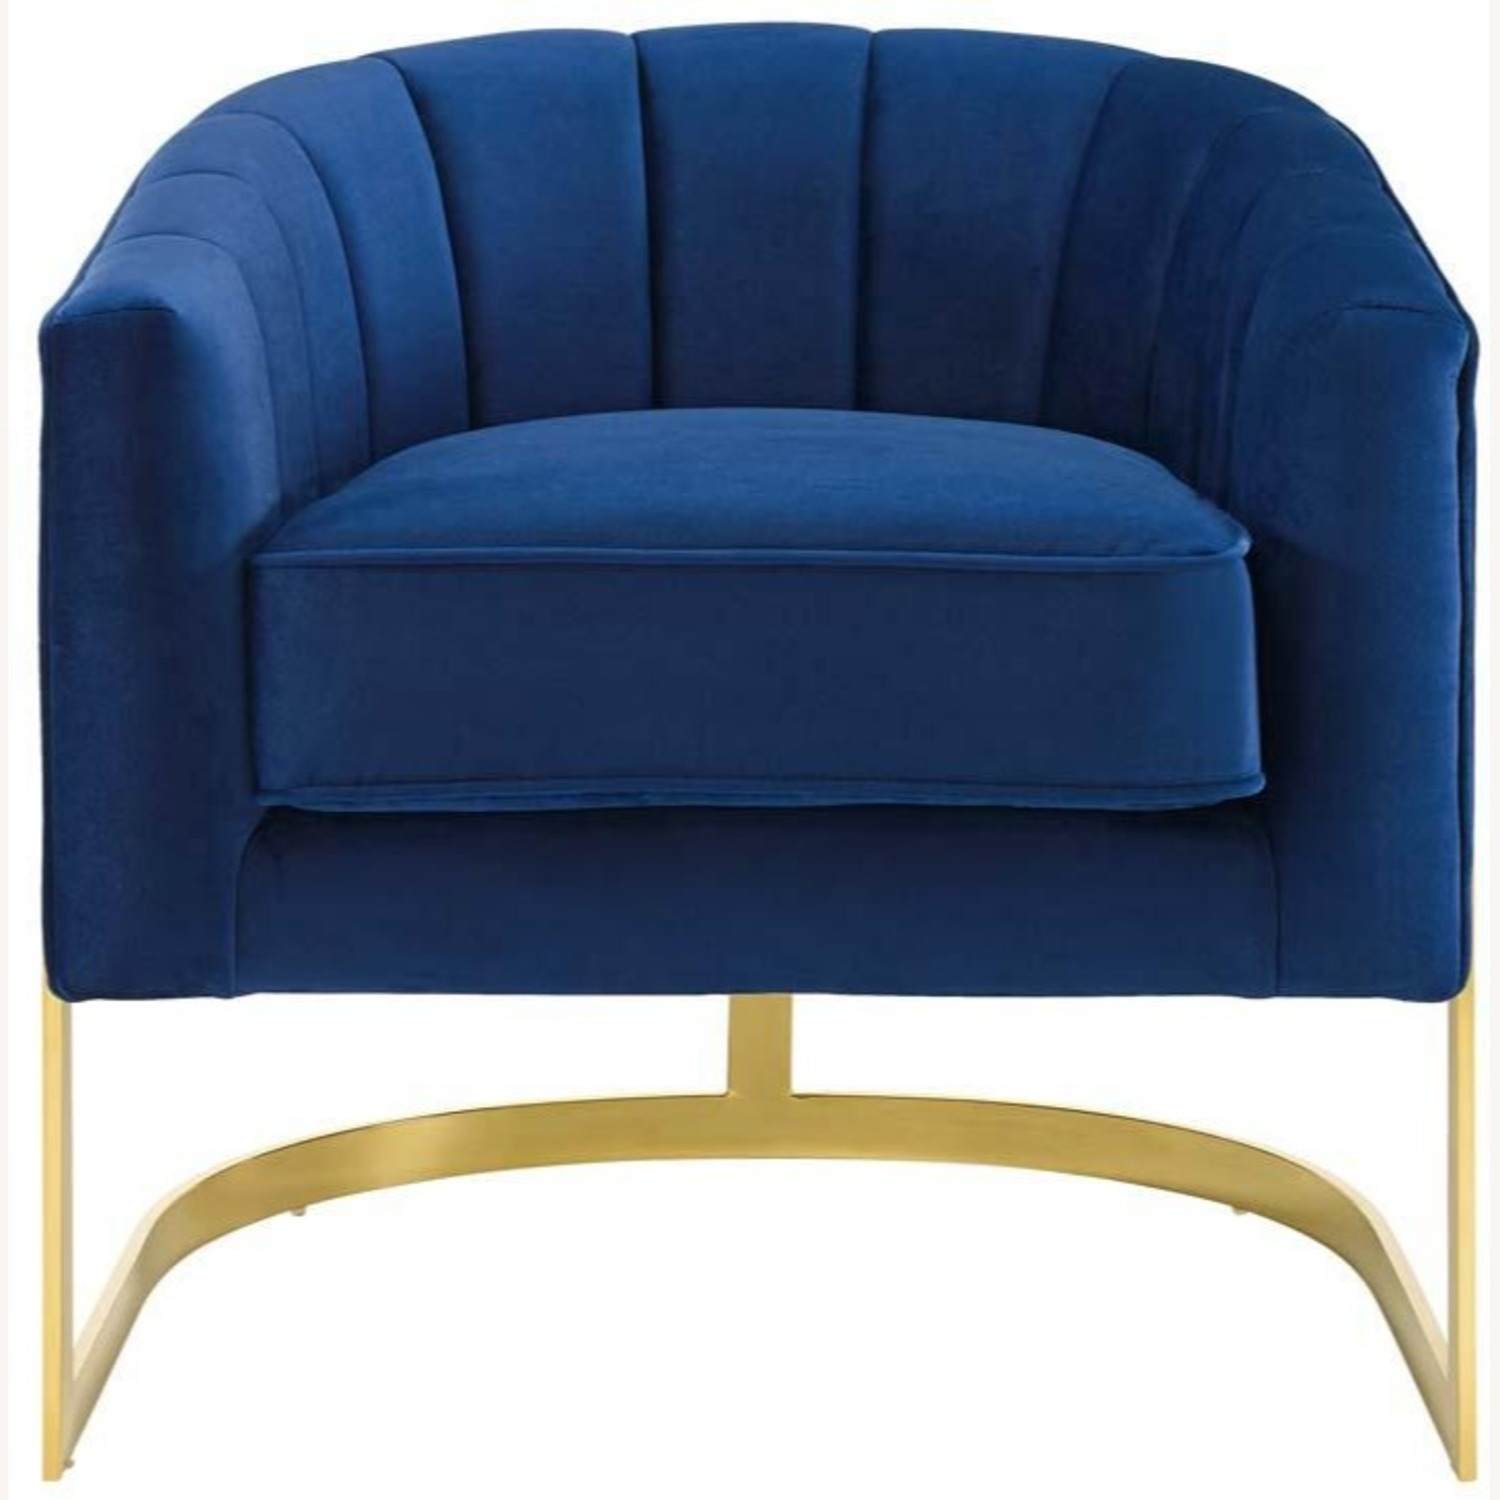 Accent Chair In Navy Velvet W/ Channel Tufting - image-1